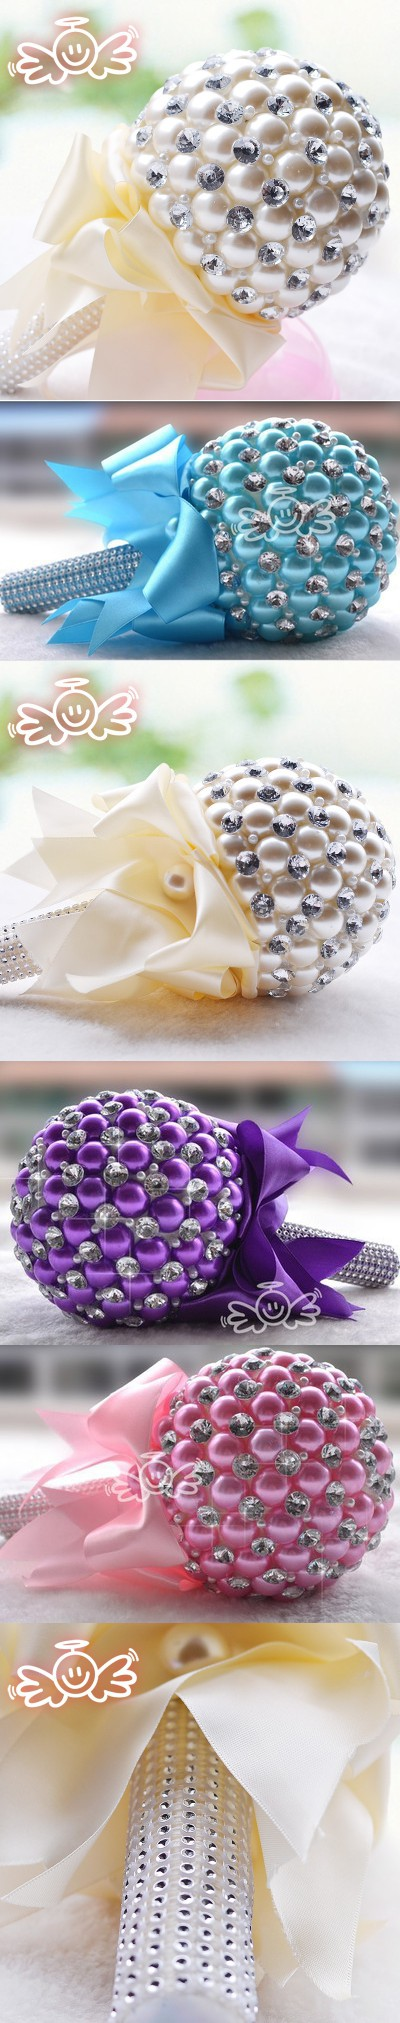 Luxury wedding flowers bridal bouquets gorgeous pearls bride bouquet